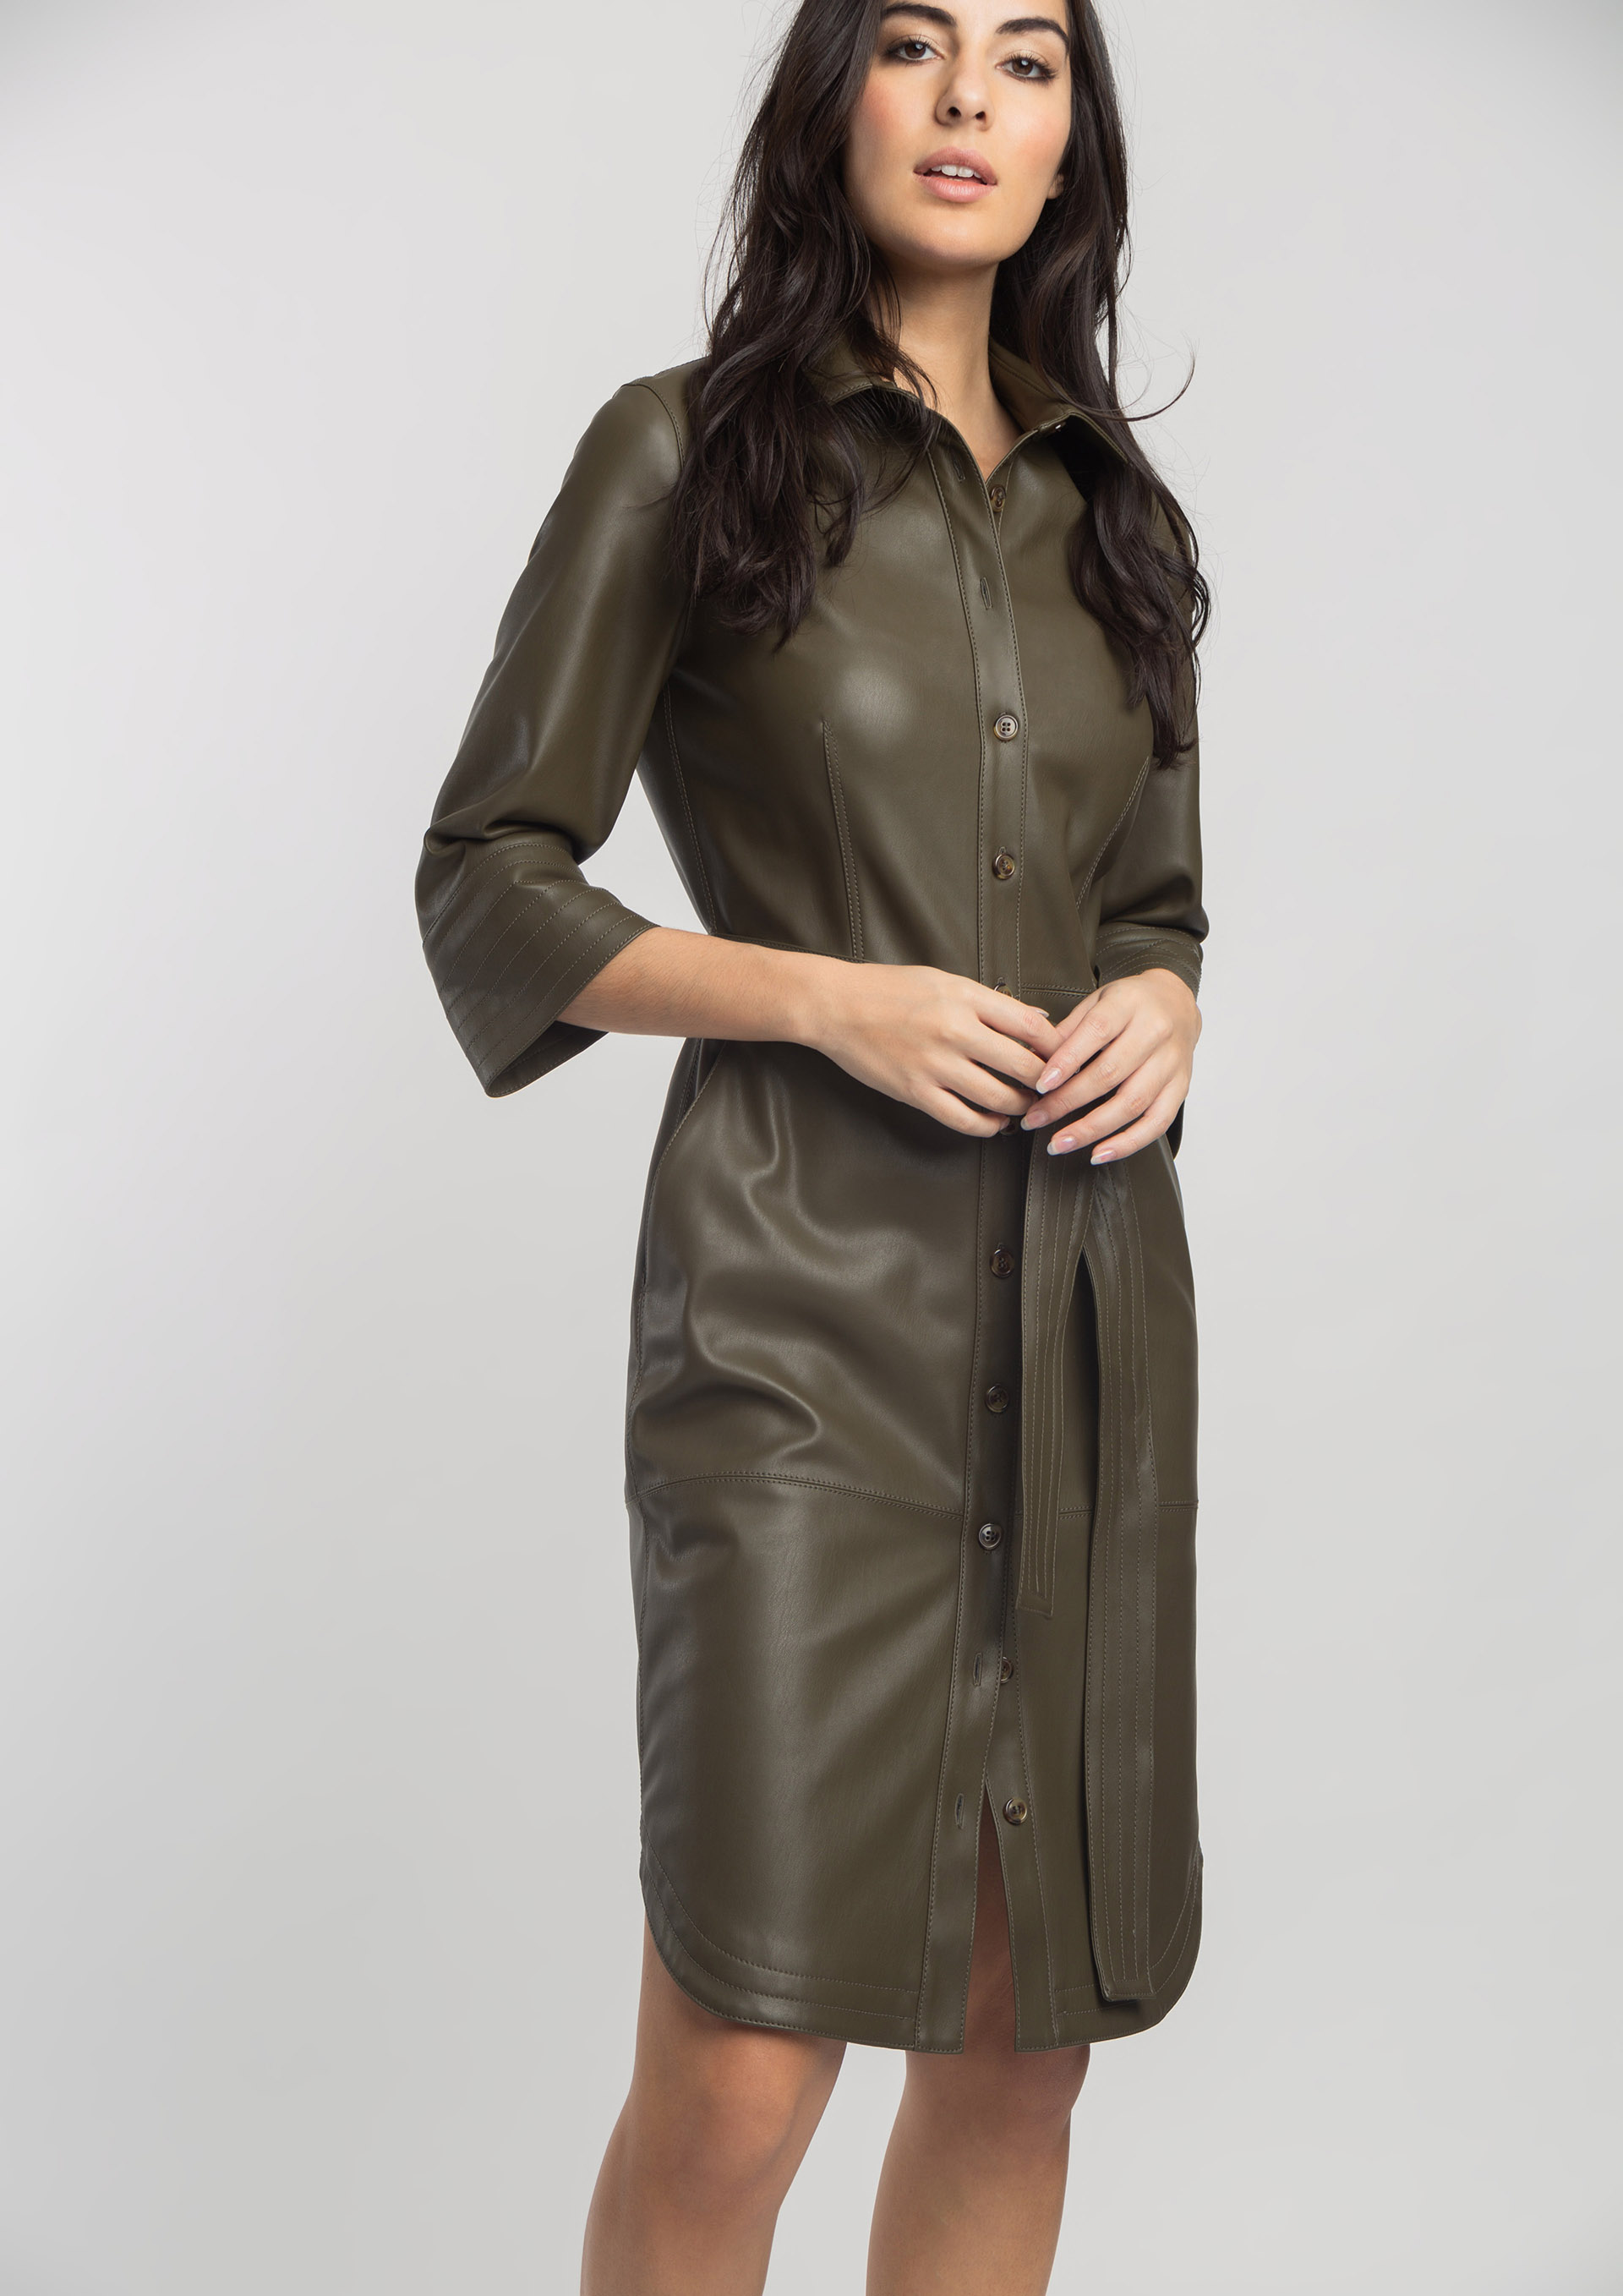 Leather effect khaki dress